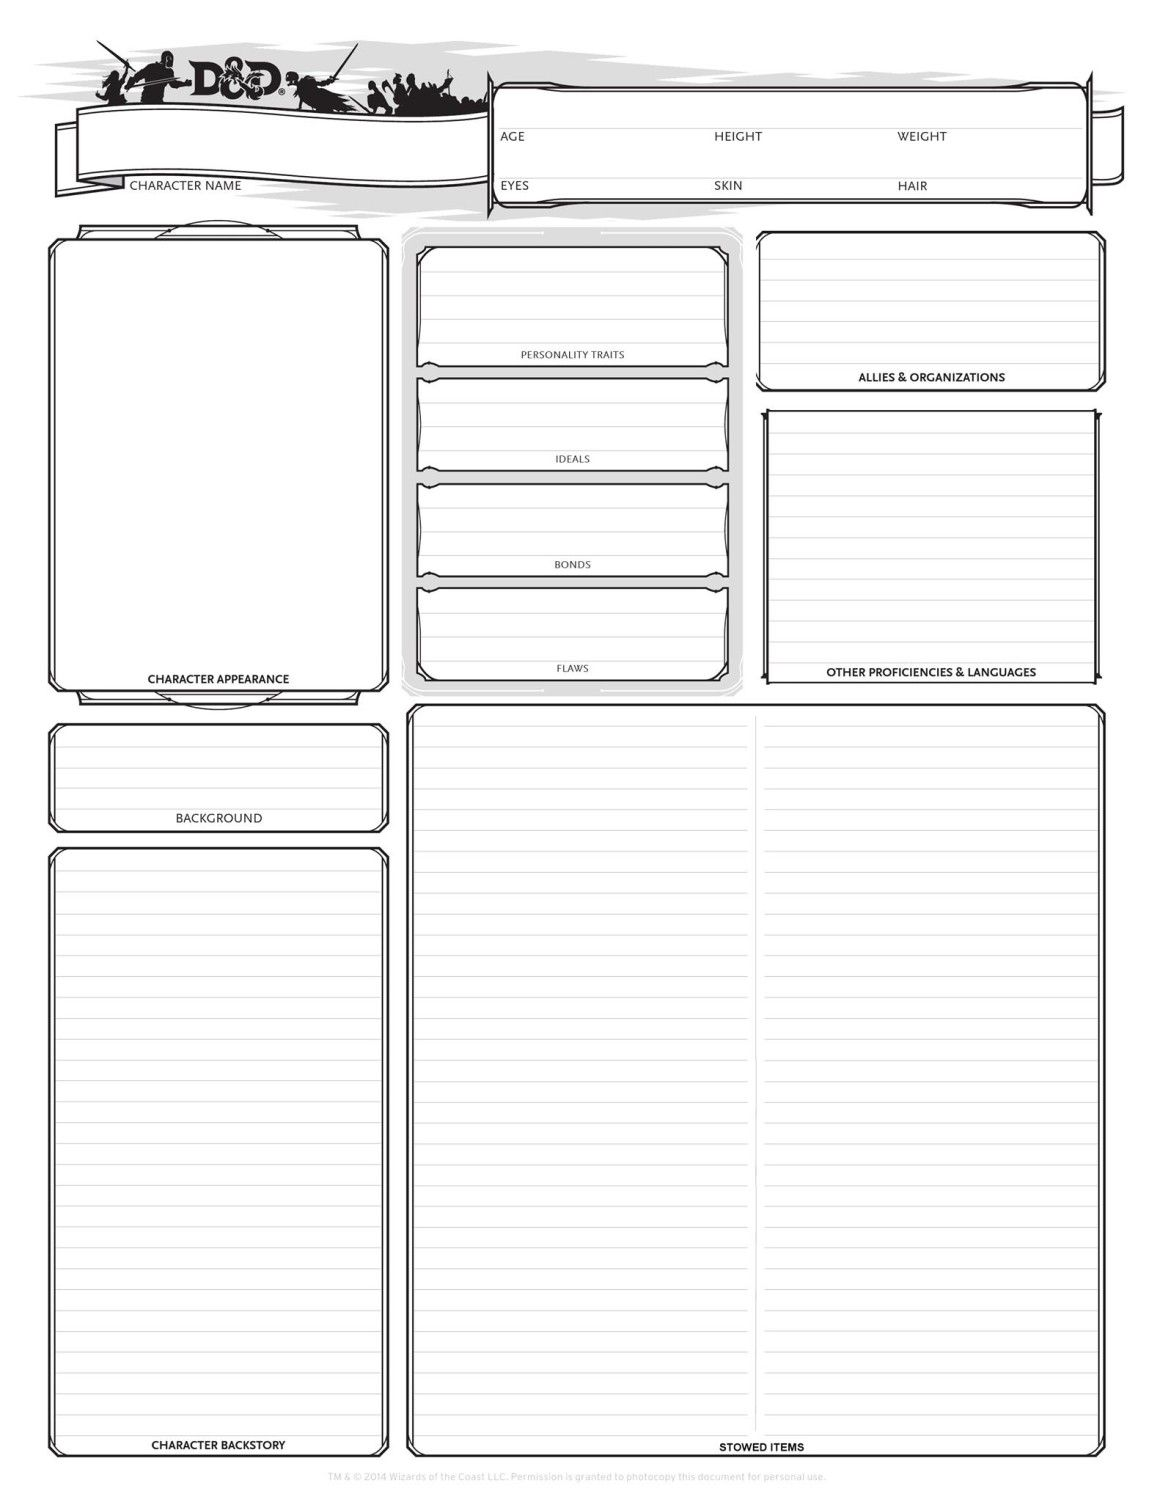 This is a photo of Declarative Dnd 5e Printable Character Sheet